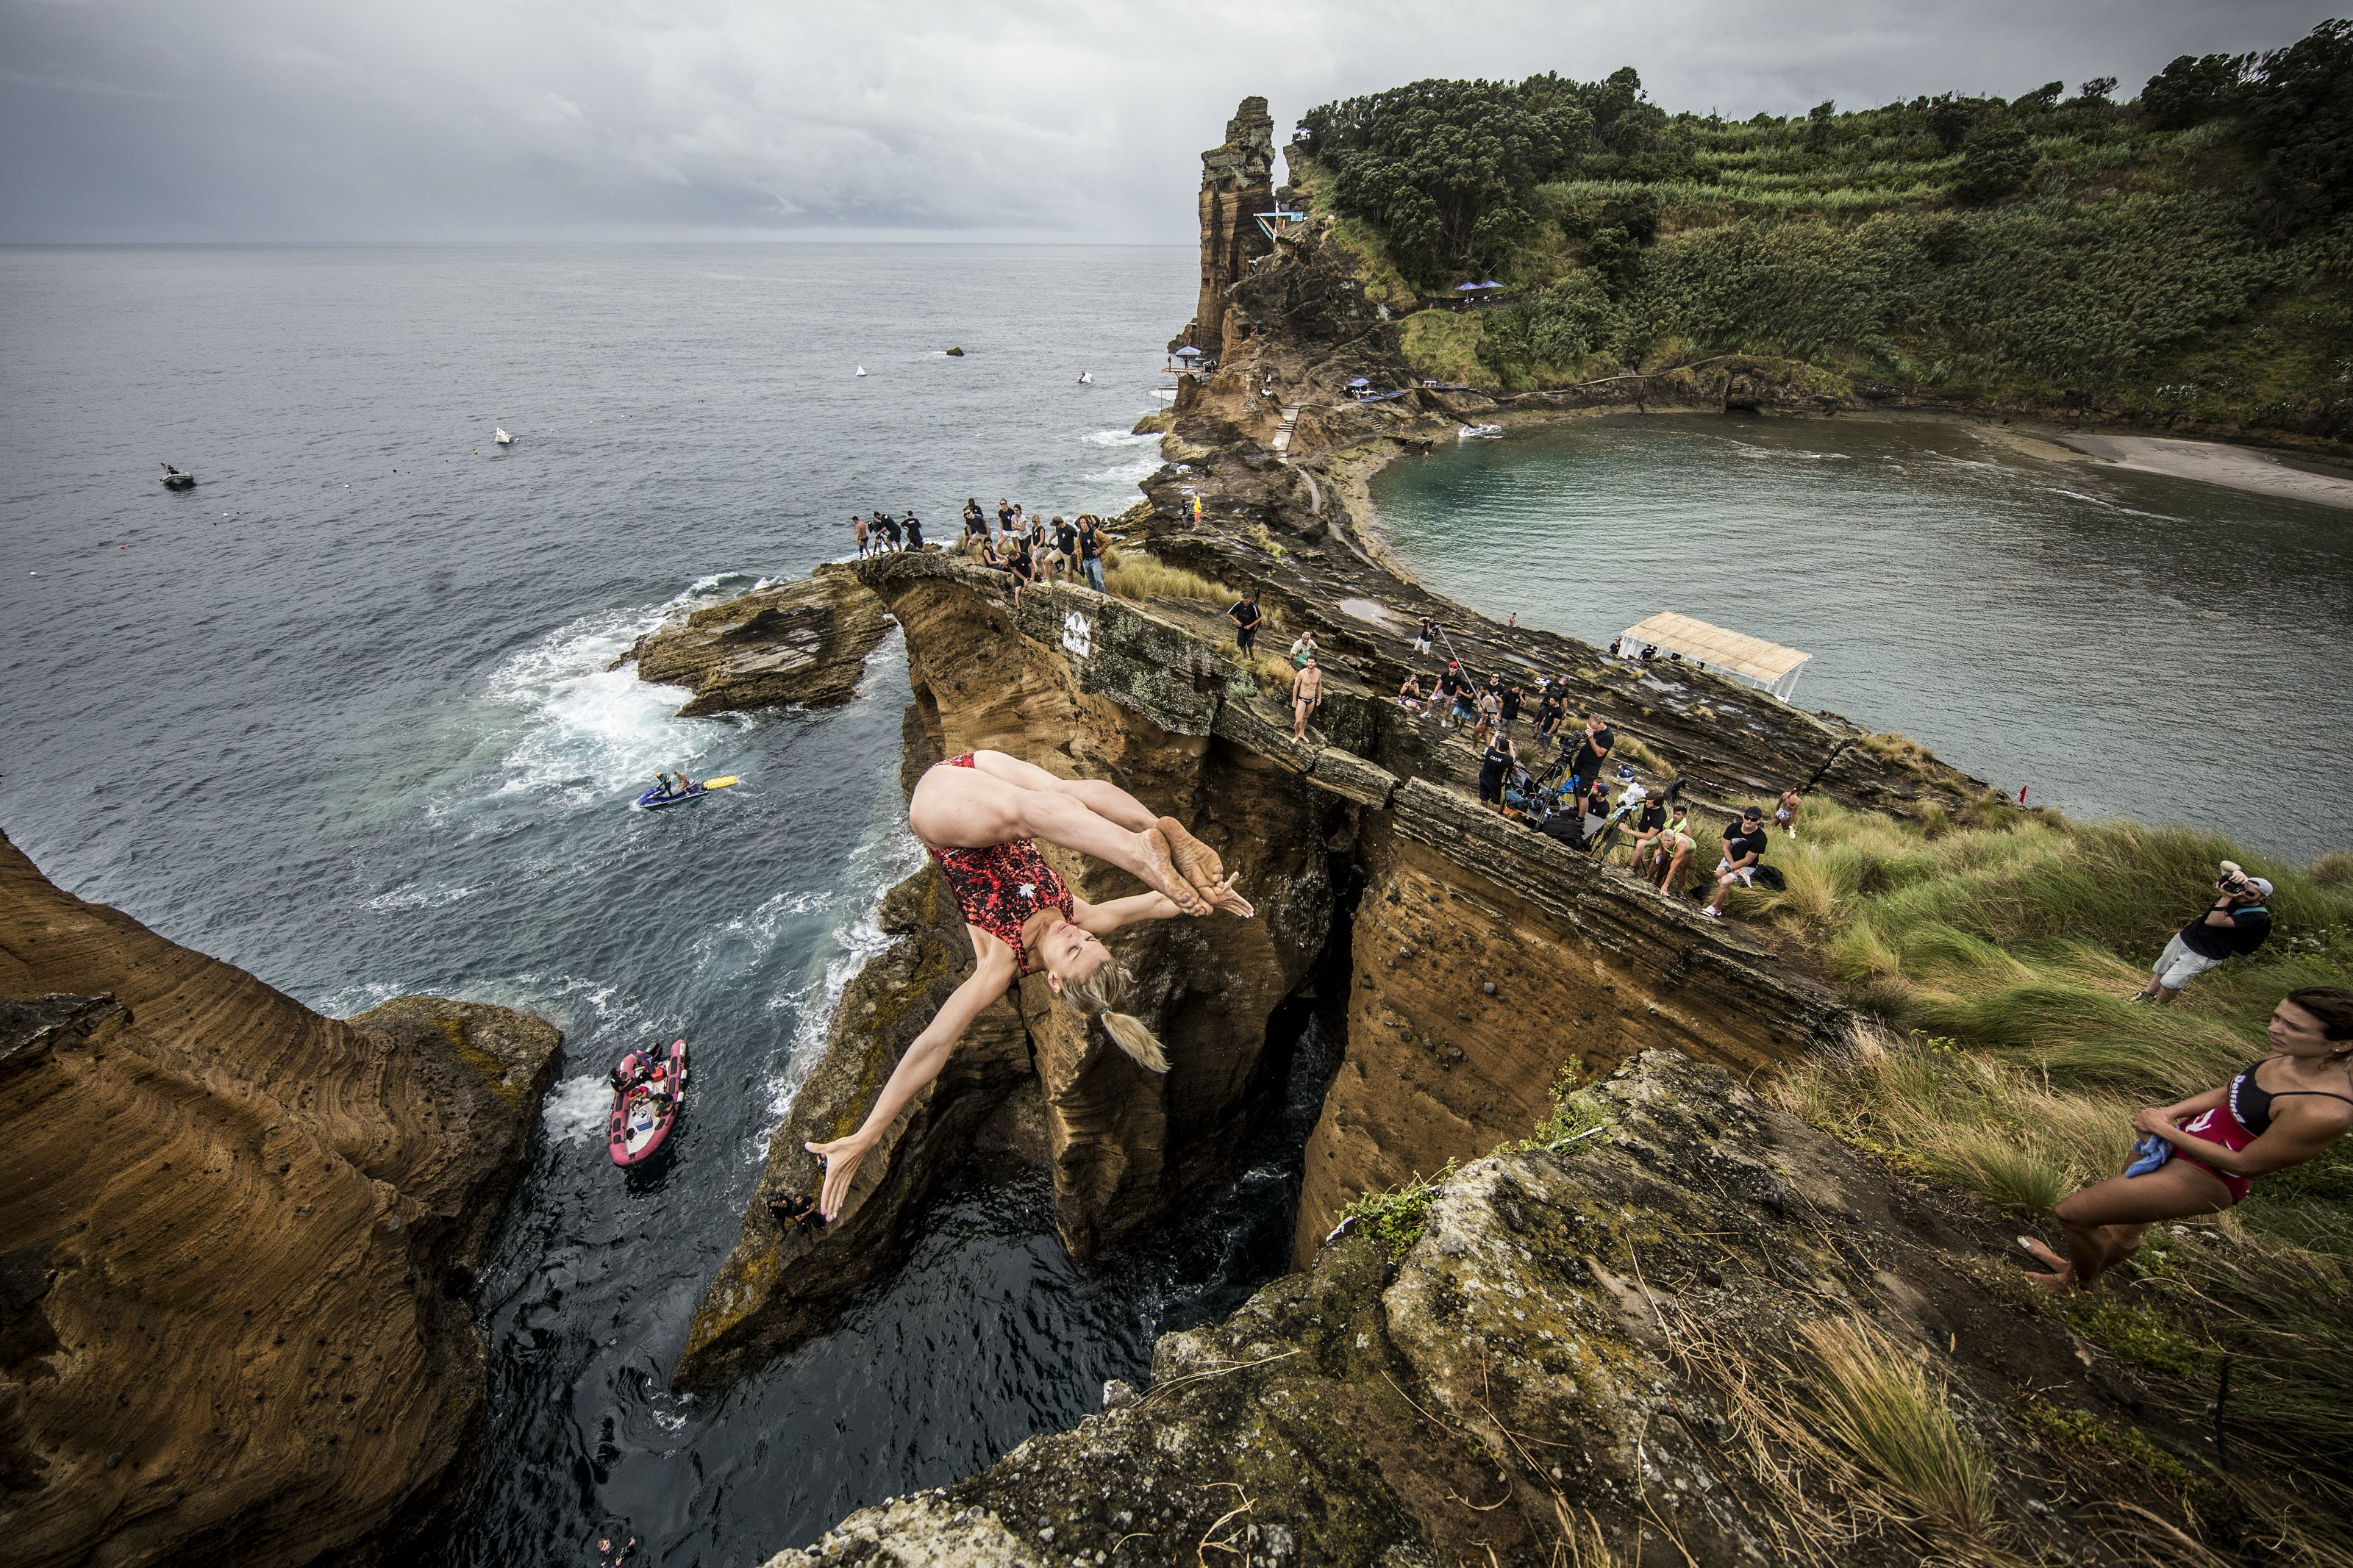 Cliff-Diving From Bosnia-Herzegovina To Polignano, Italia: Women's Championship This Weekend